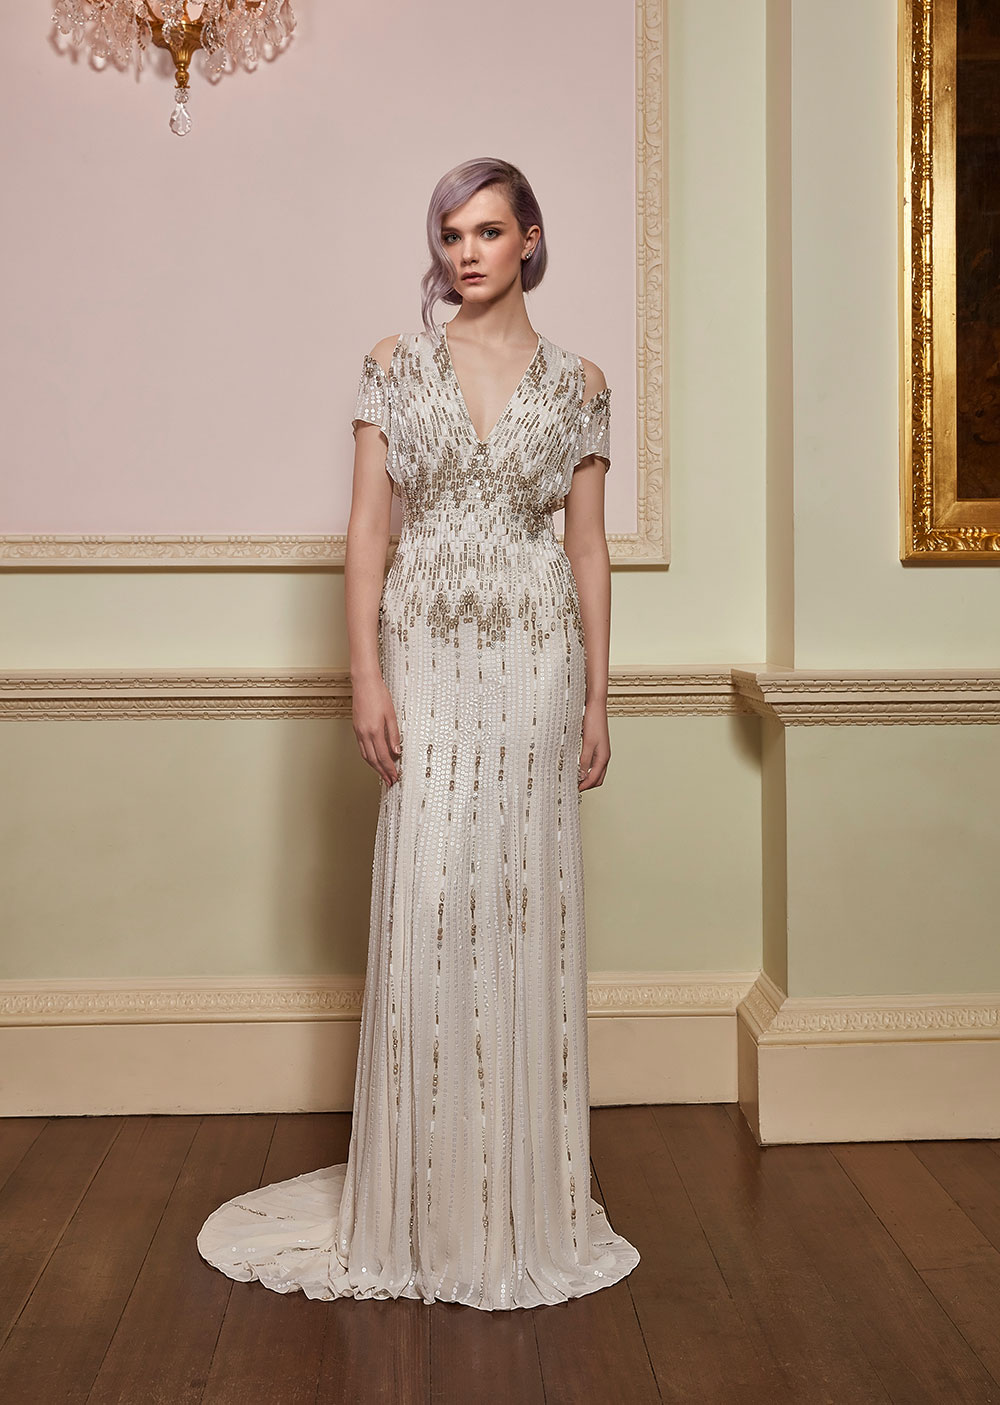 Dare - Jenny Packham 2018 Bridal Collection. www.theweddingnotebook.com